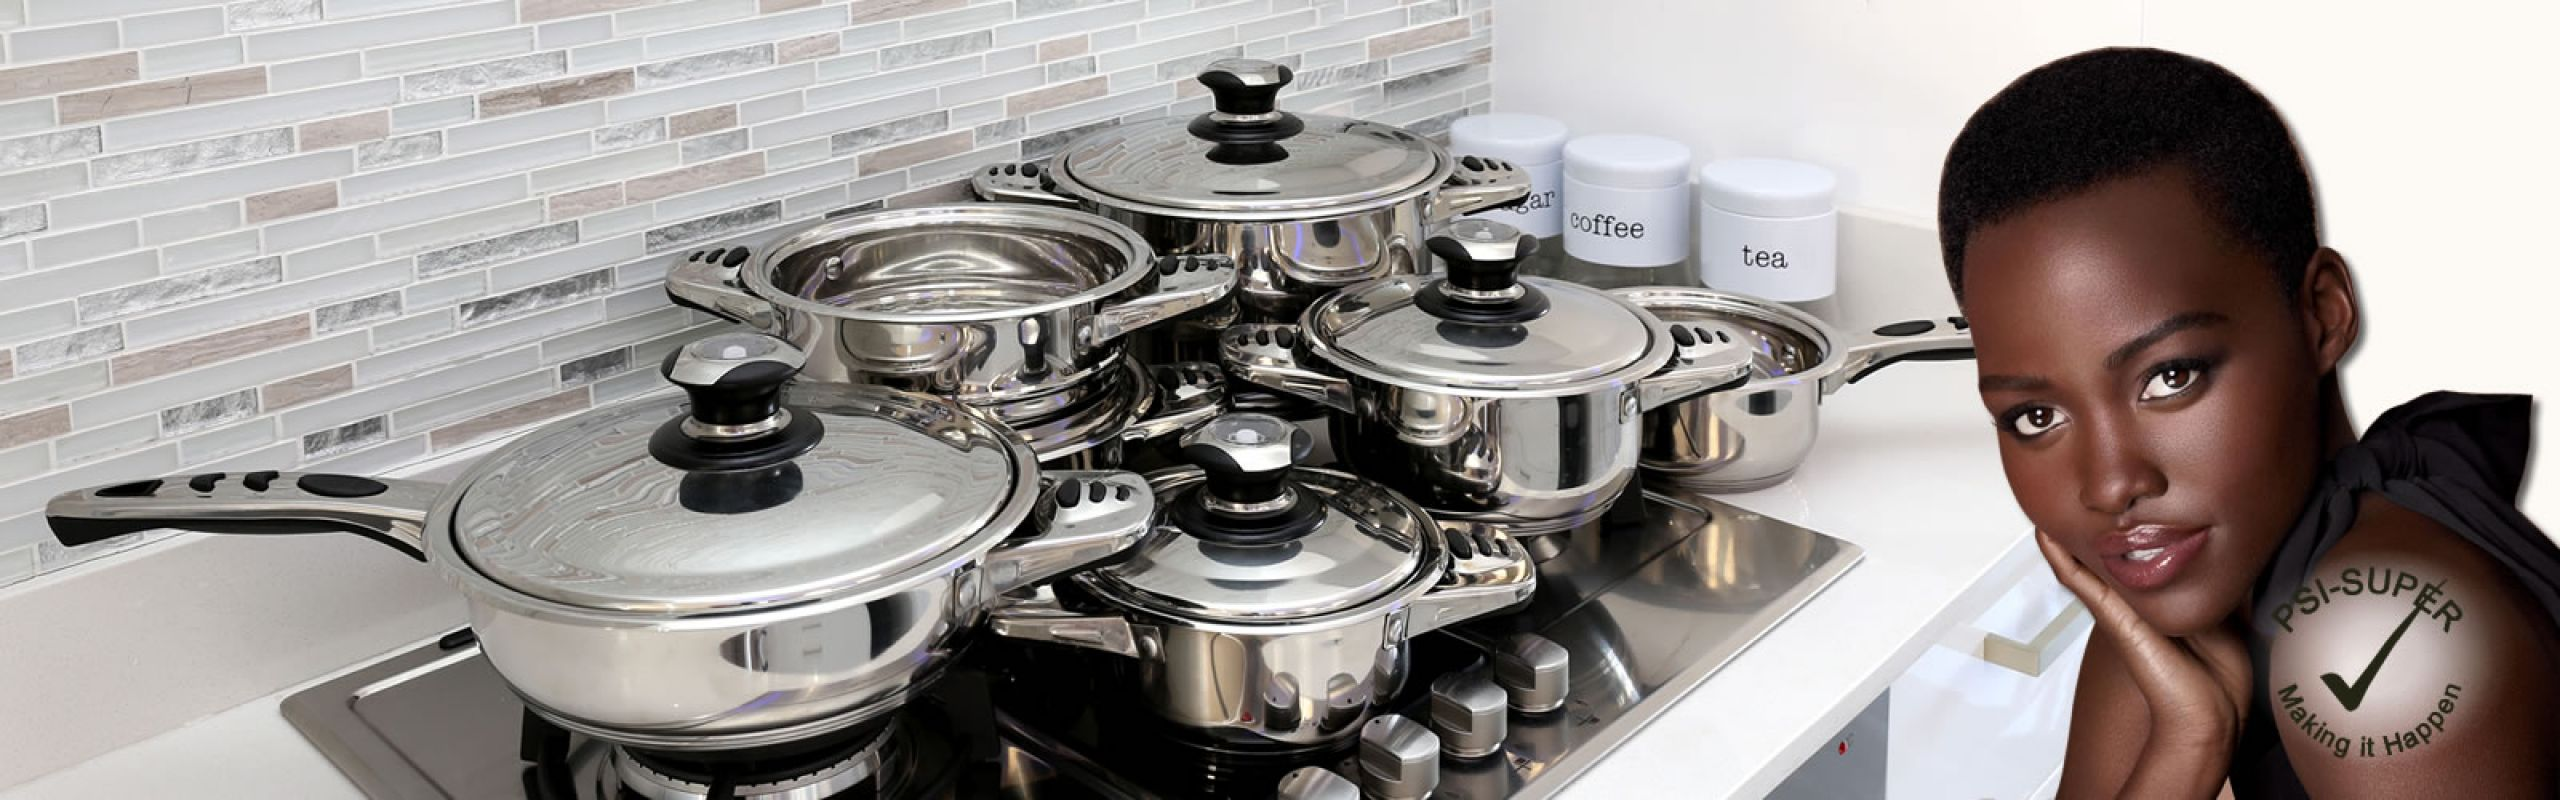 PSI-Super – 12 Piece 18 10 Stainless Steel Pots